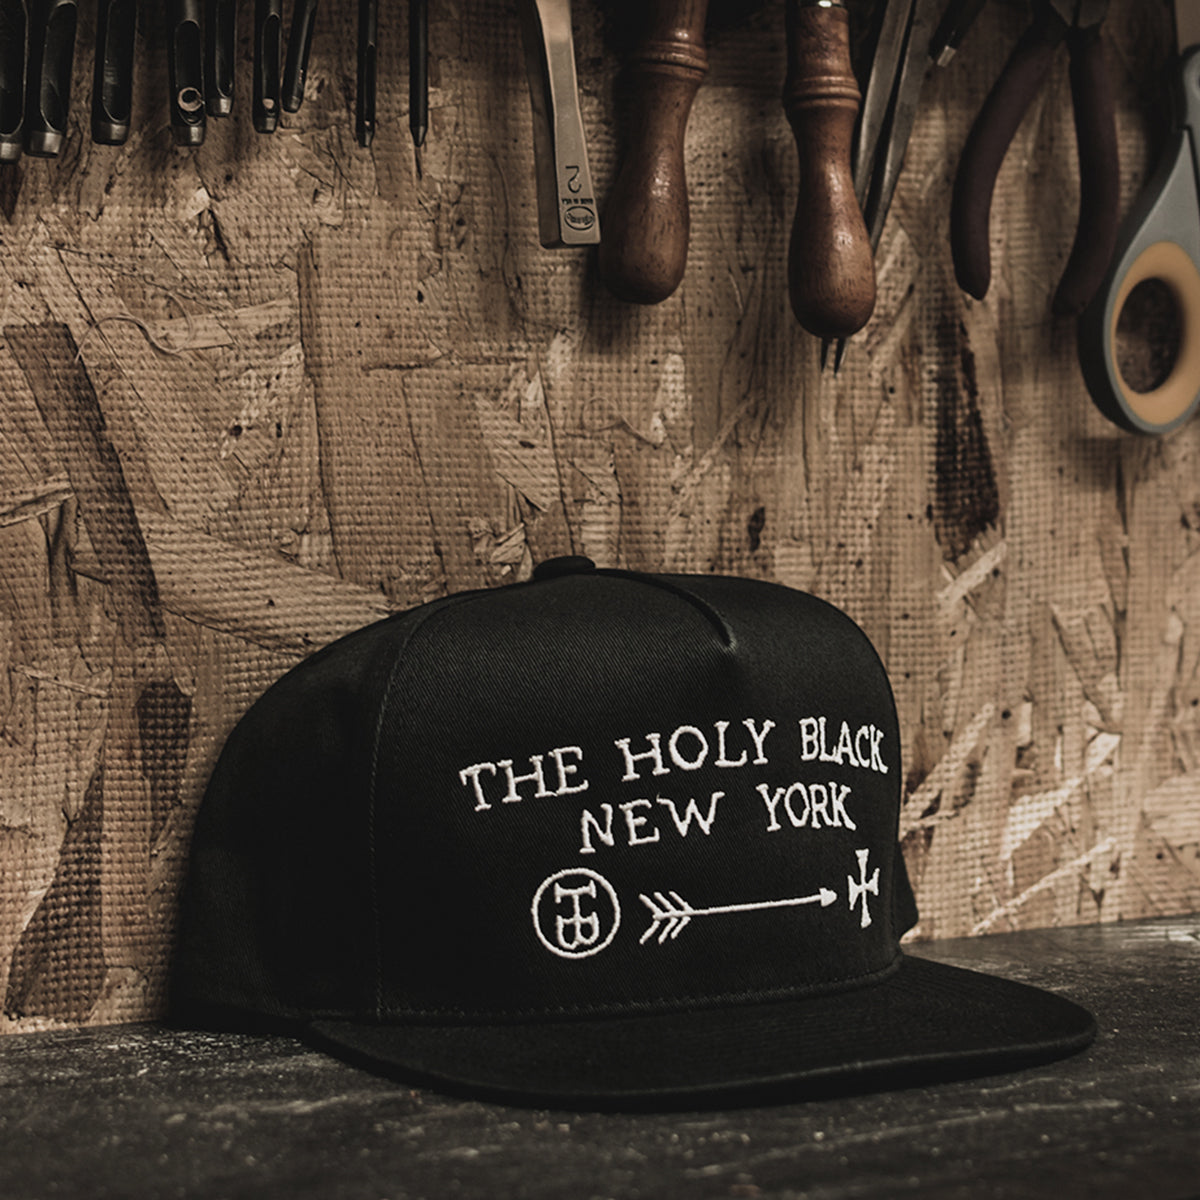 The Holy Black SnapBack